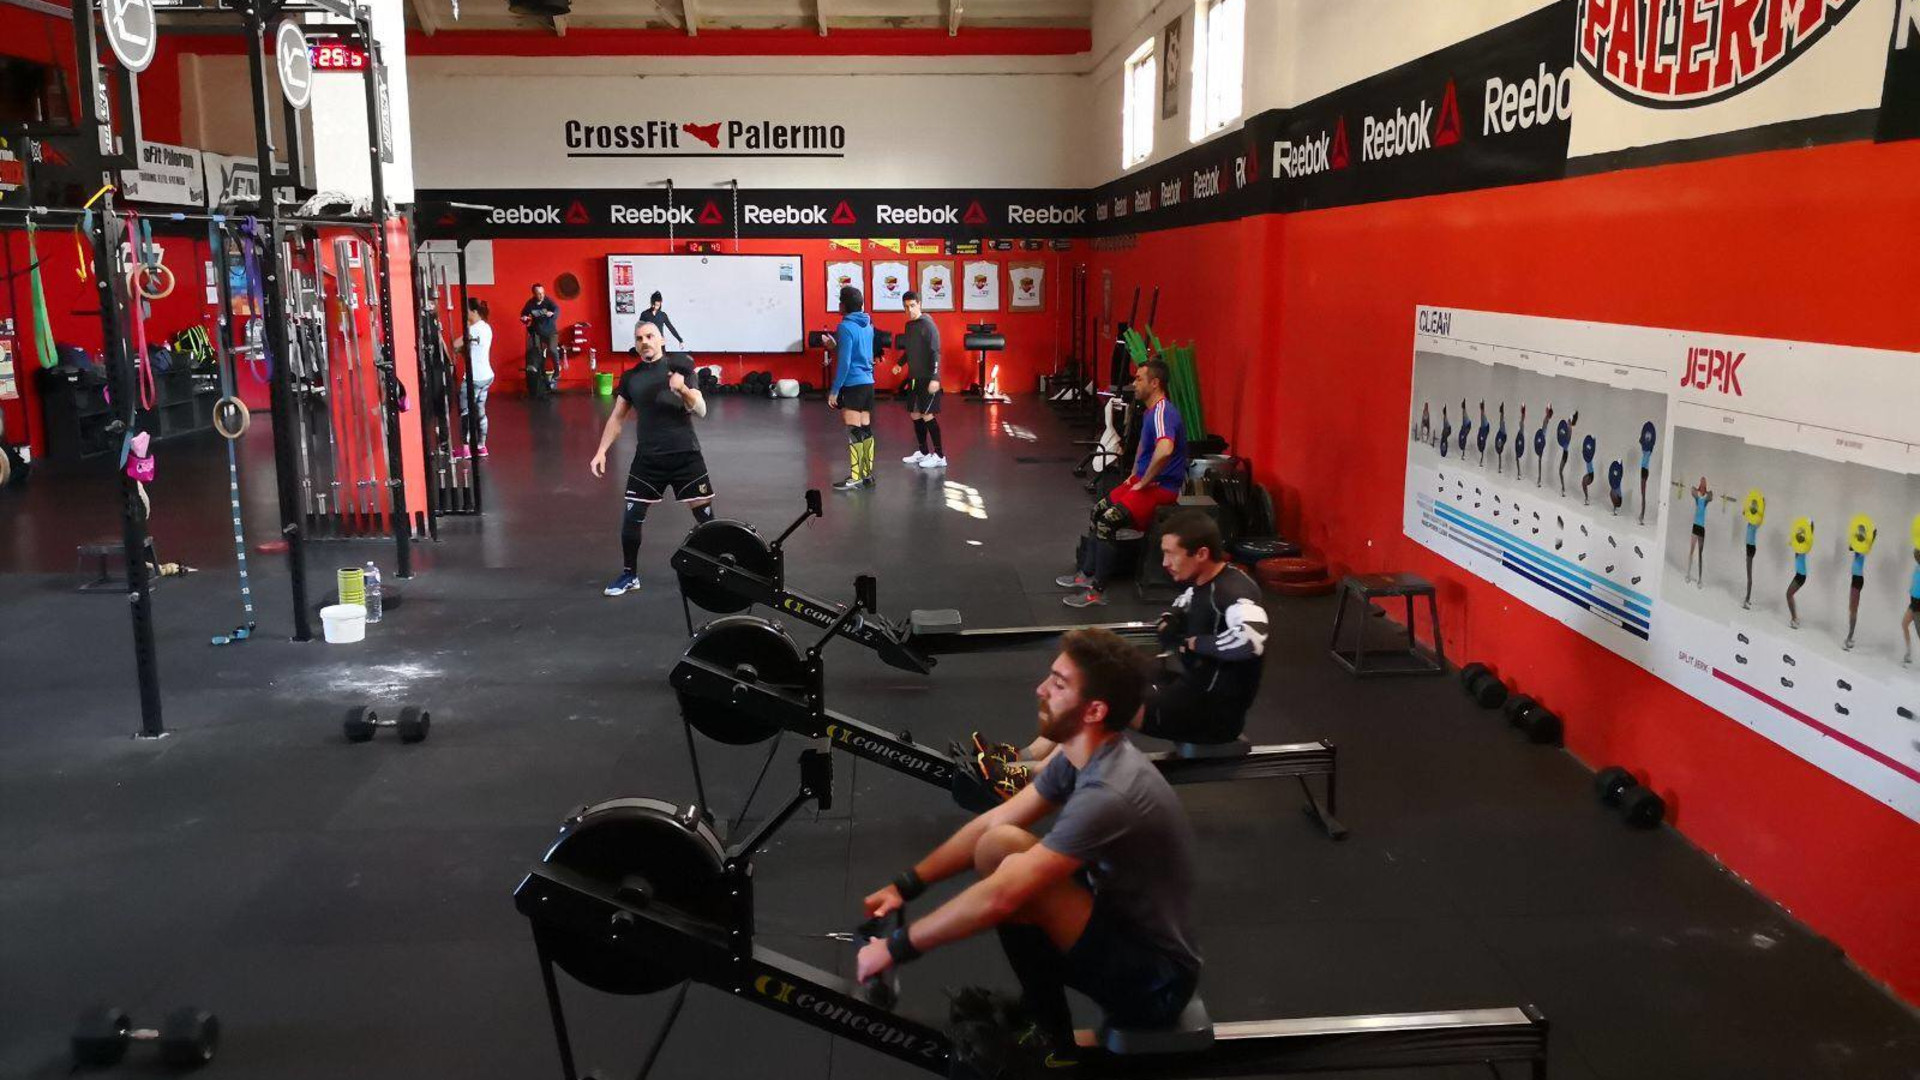 Crossfit Palermo